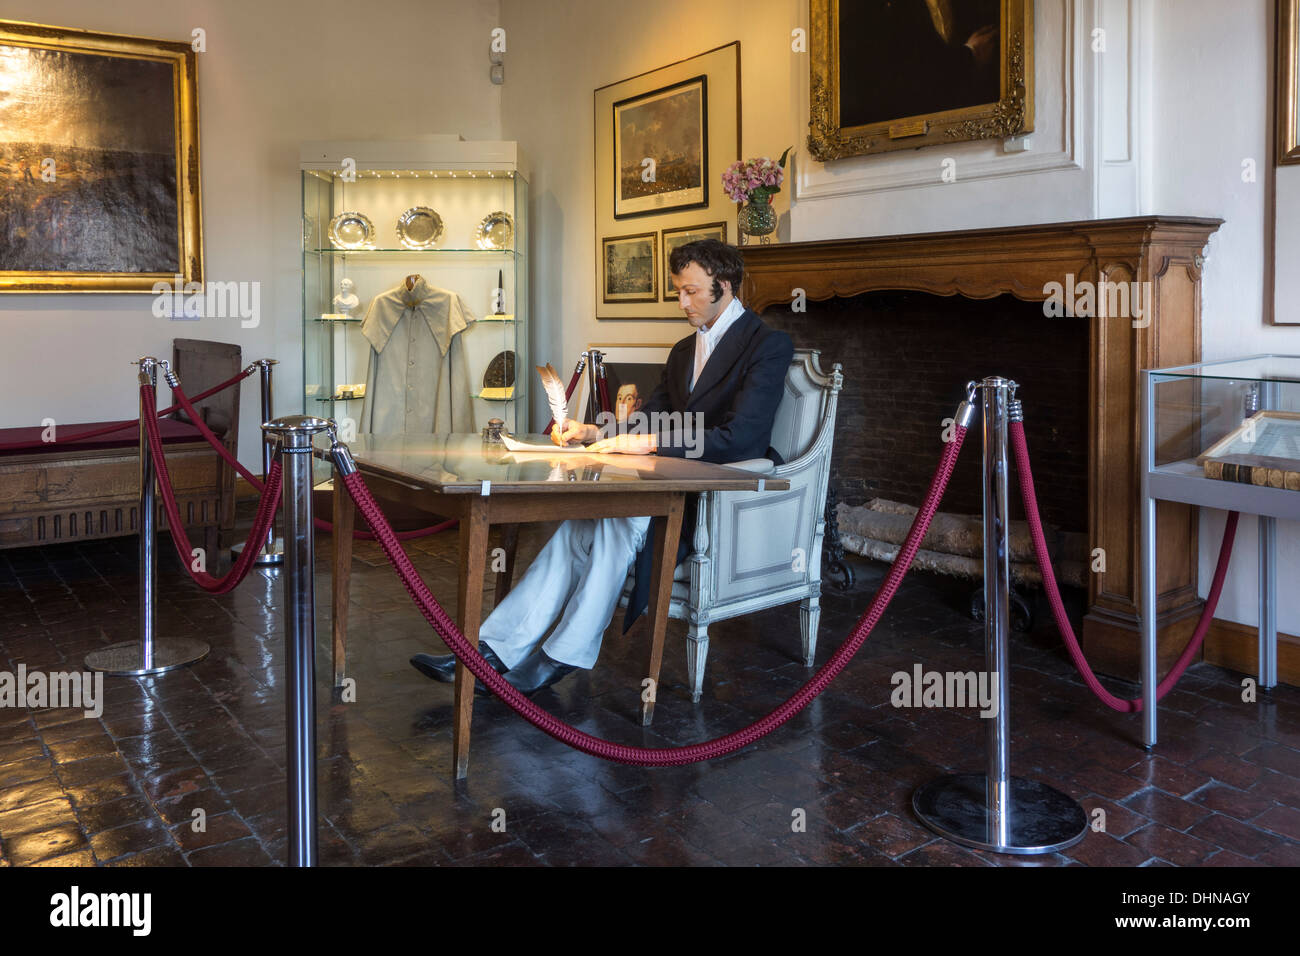 Arthur Wellesley, commander of allied armies in his headquarters during 1815 Battle of Waterloo, Wellington Museum, Belgium - Stock Image